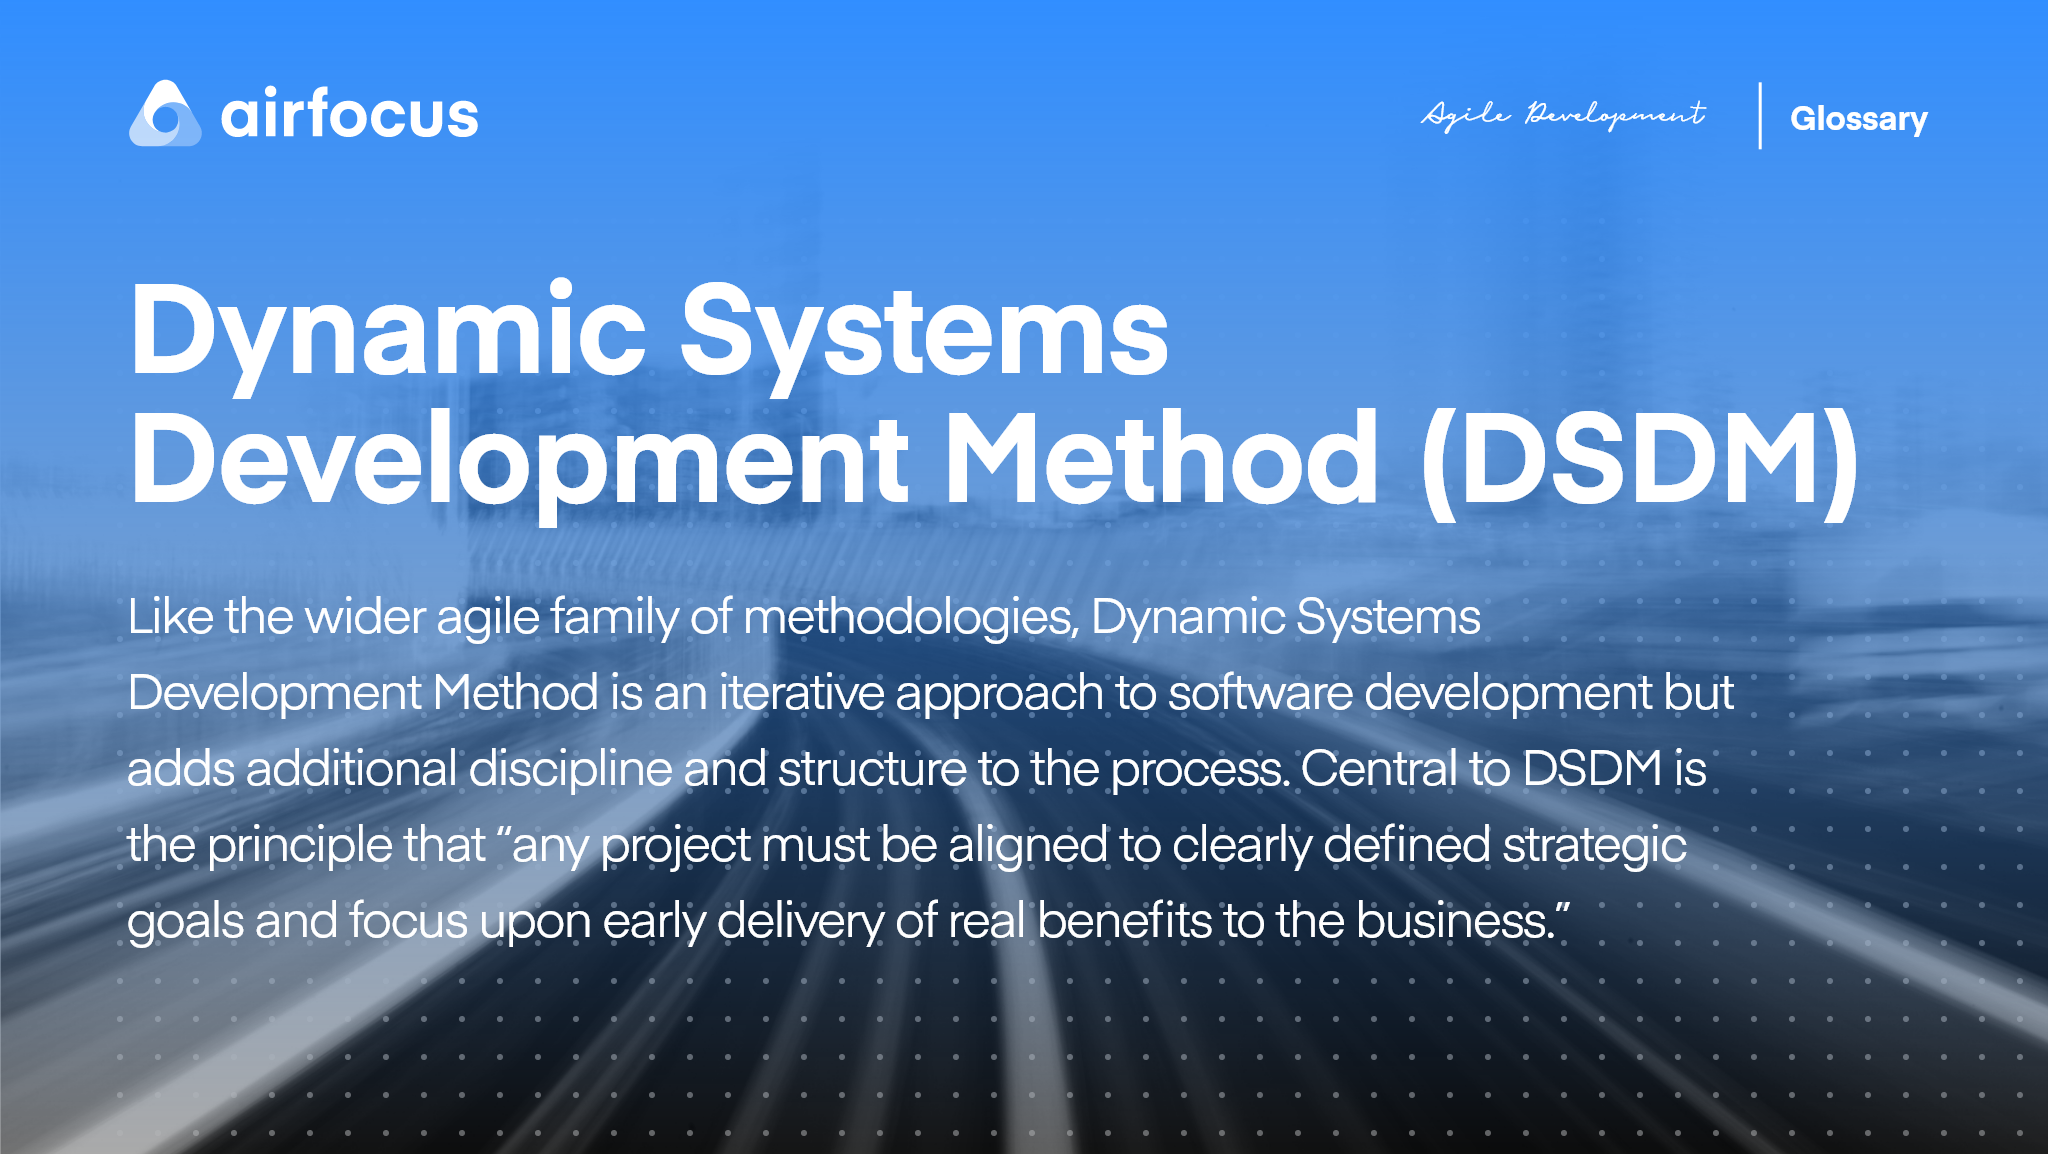 What Is Dynamic Systems Development Method (DSDM)